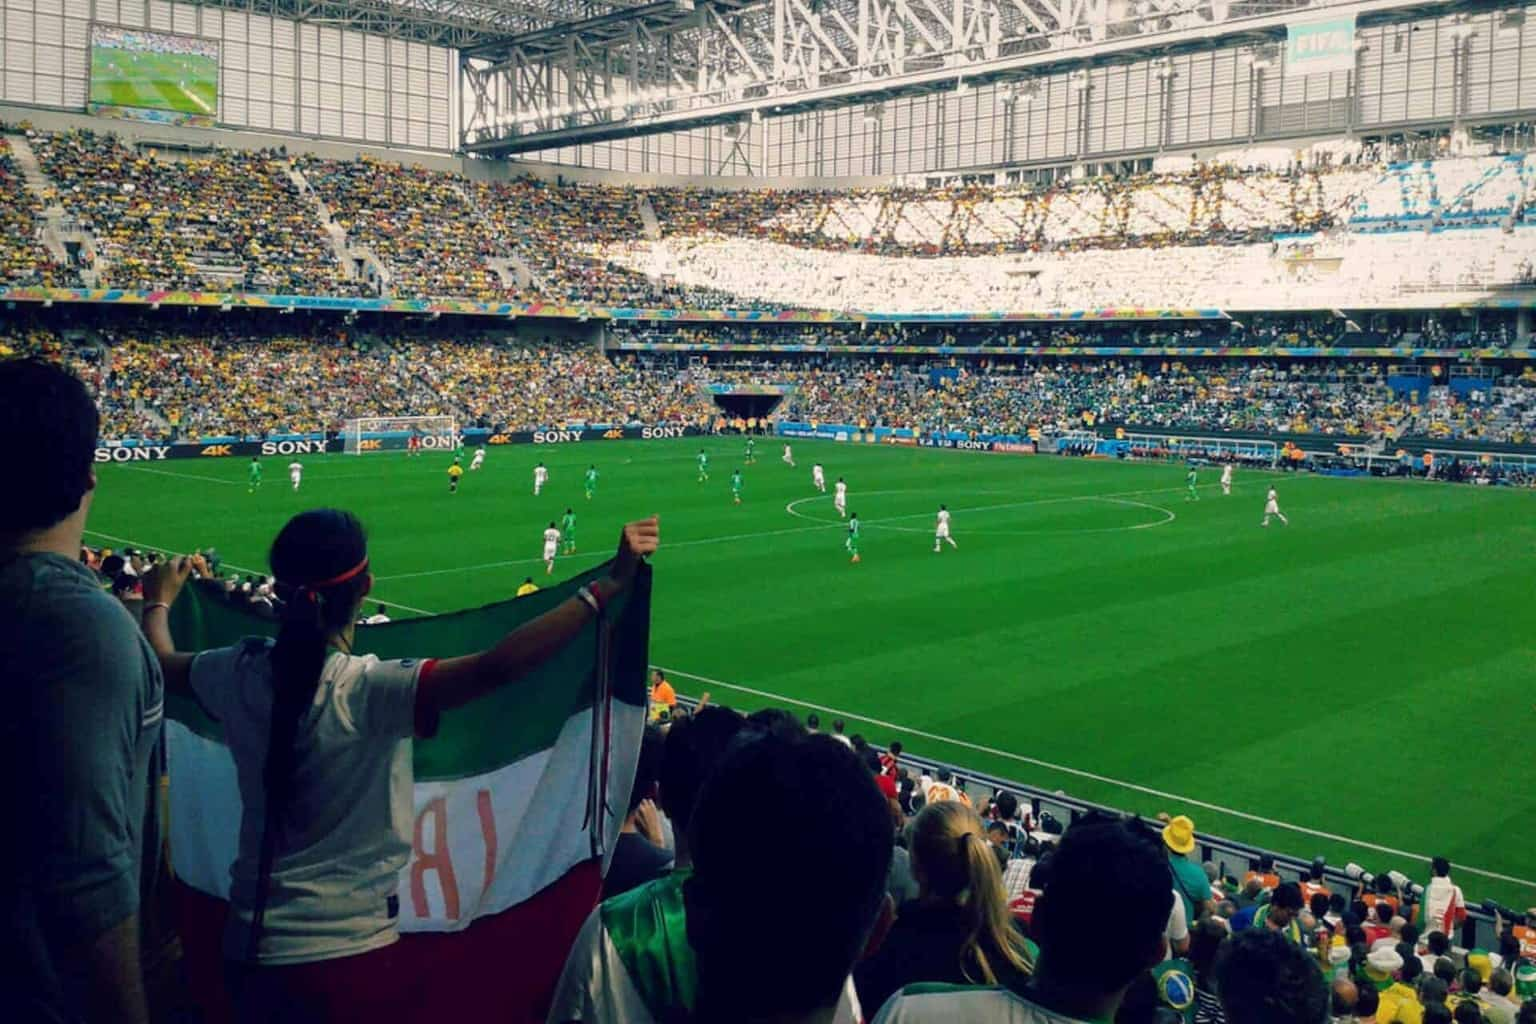 e9dc4f35cf2 17 Incredible World Cup Facts You Probably Don't Know